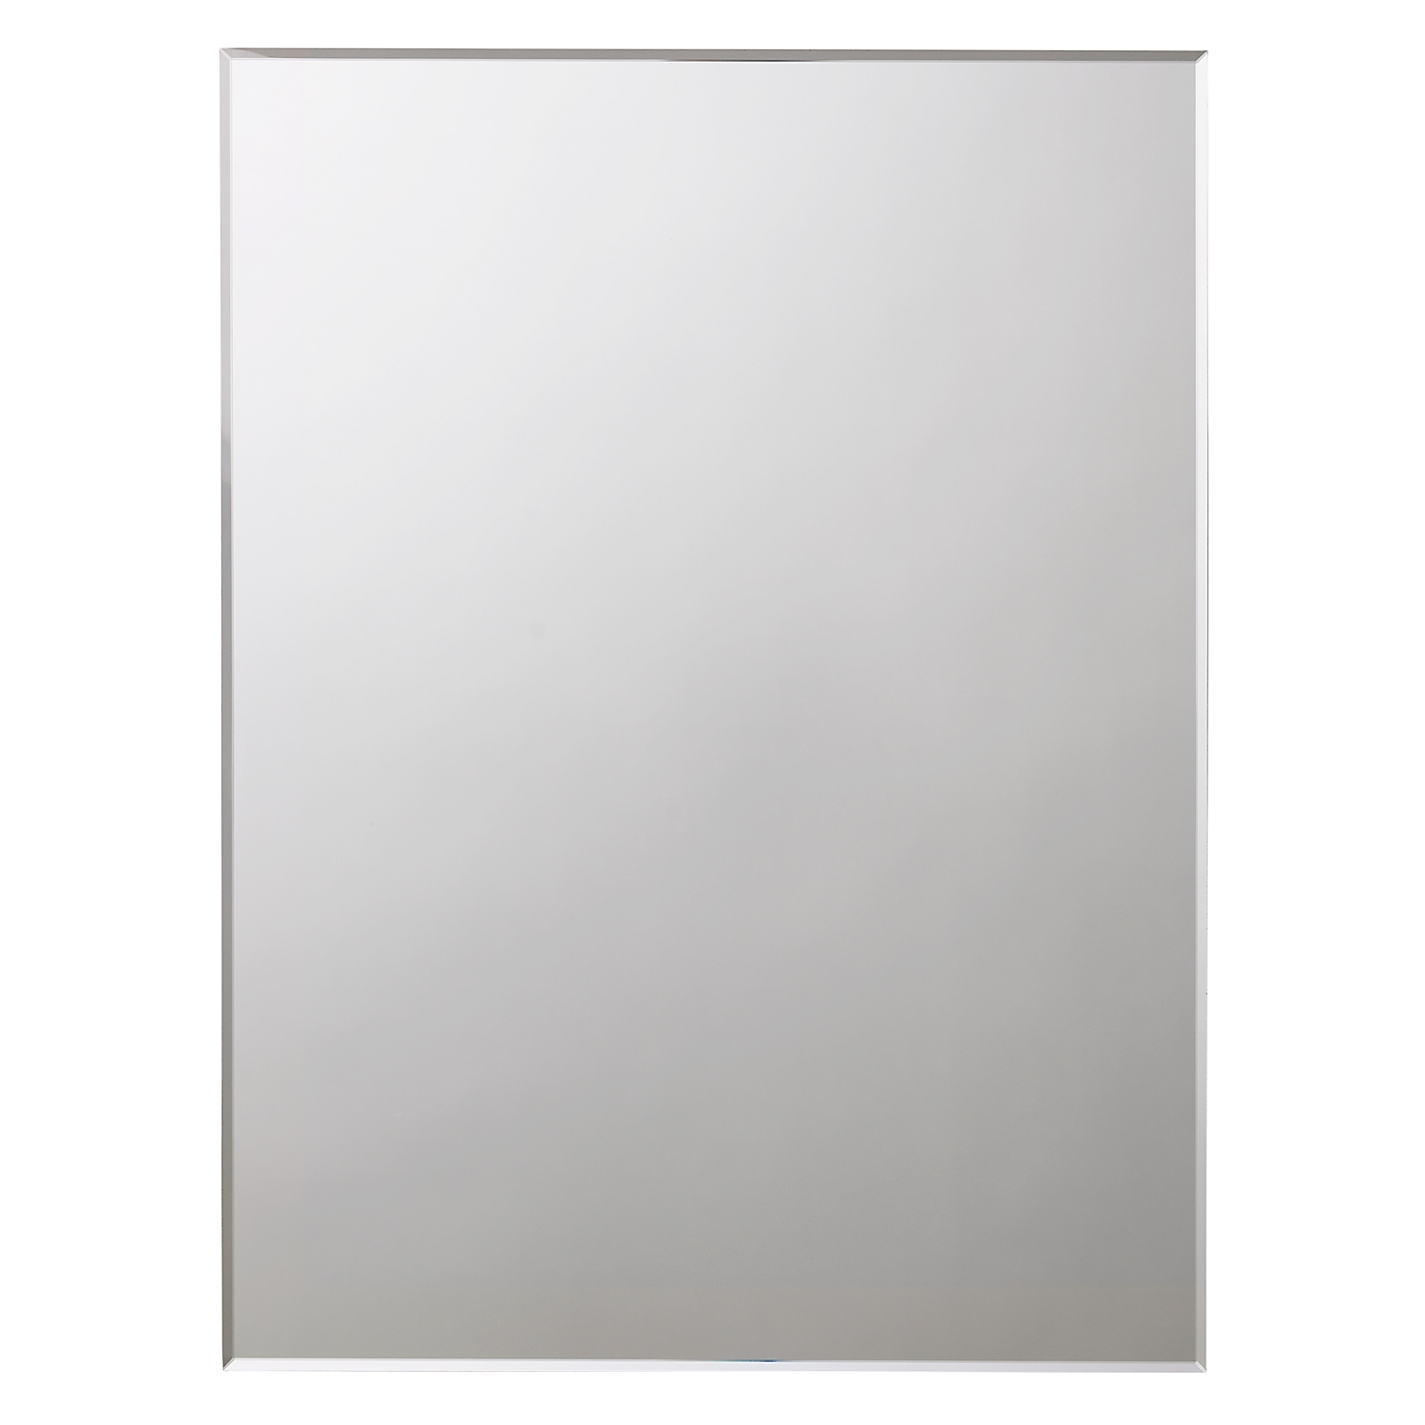 Featured Image of Bevel Edged Mirror